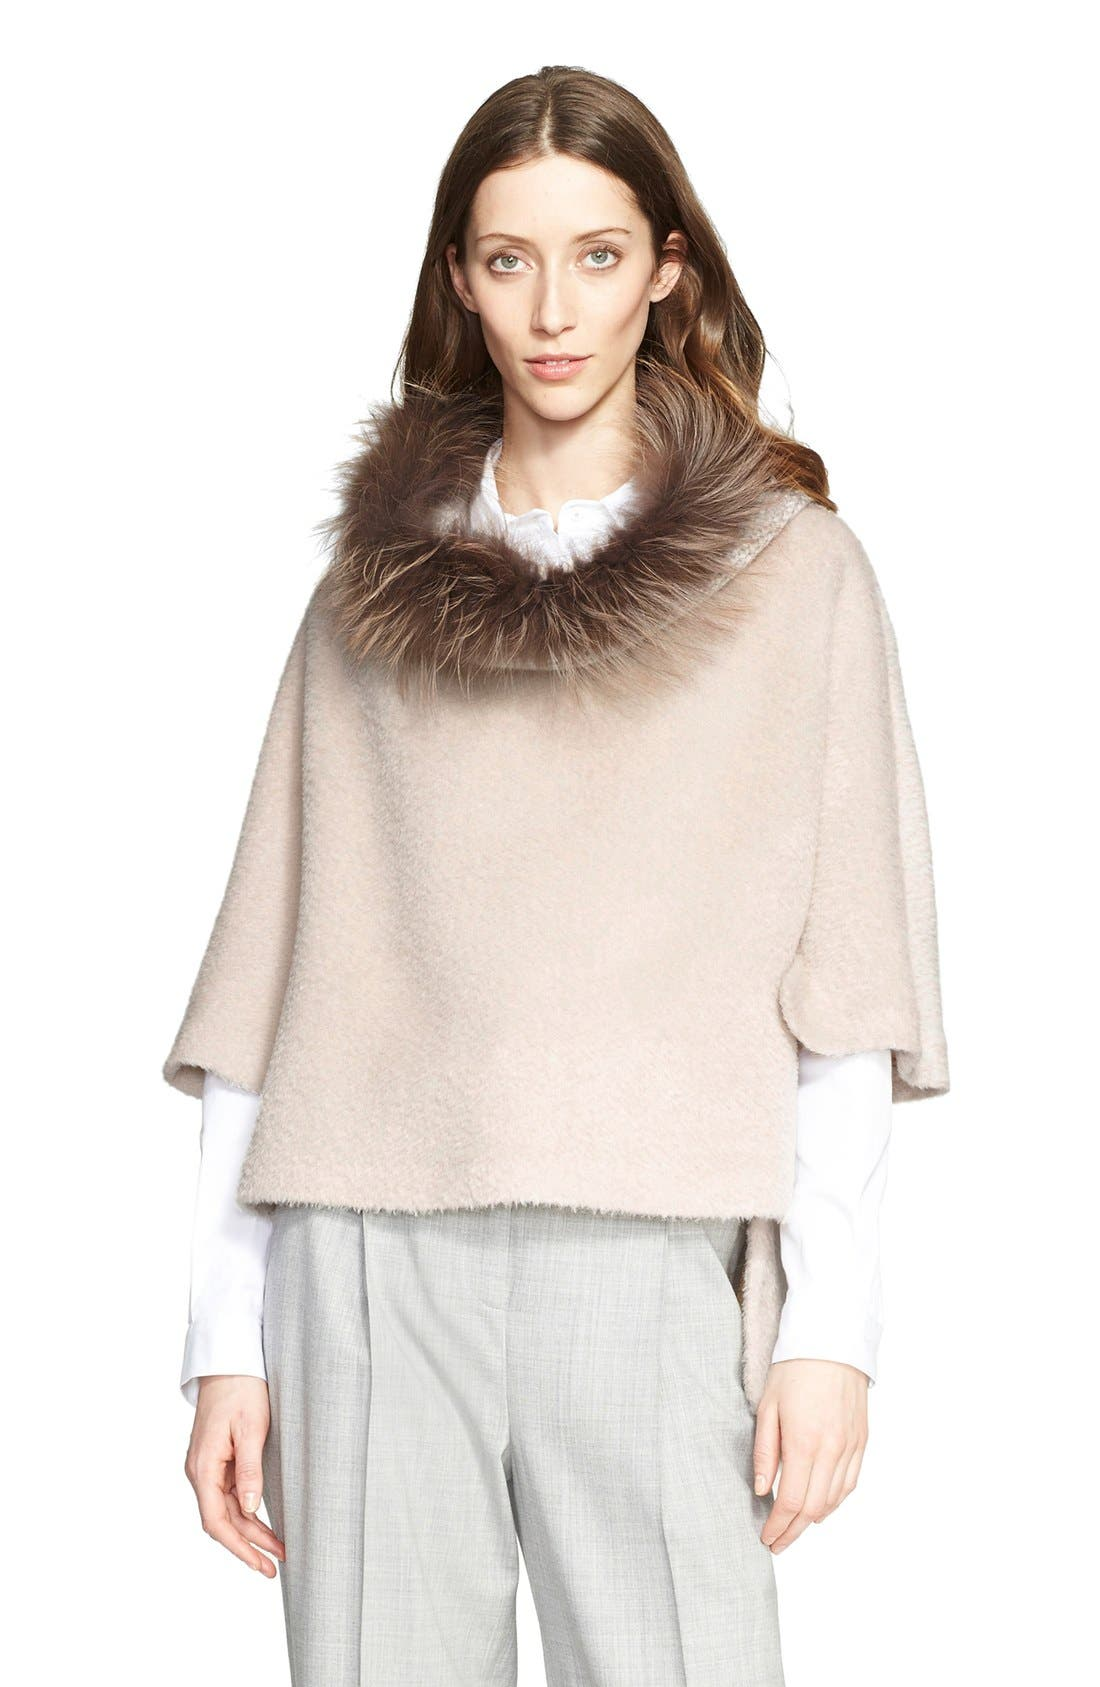 Alternate Image 1 Selected - Fabiana Filippi Alpaca Wool Blend Poncho Sweater with Genuine Fox Fur Collar